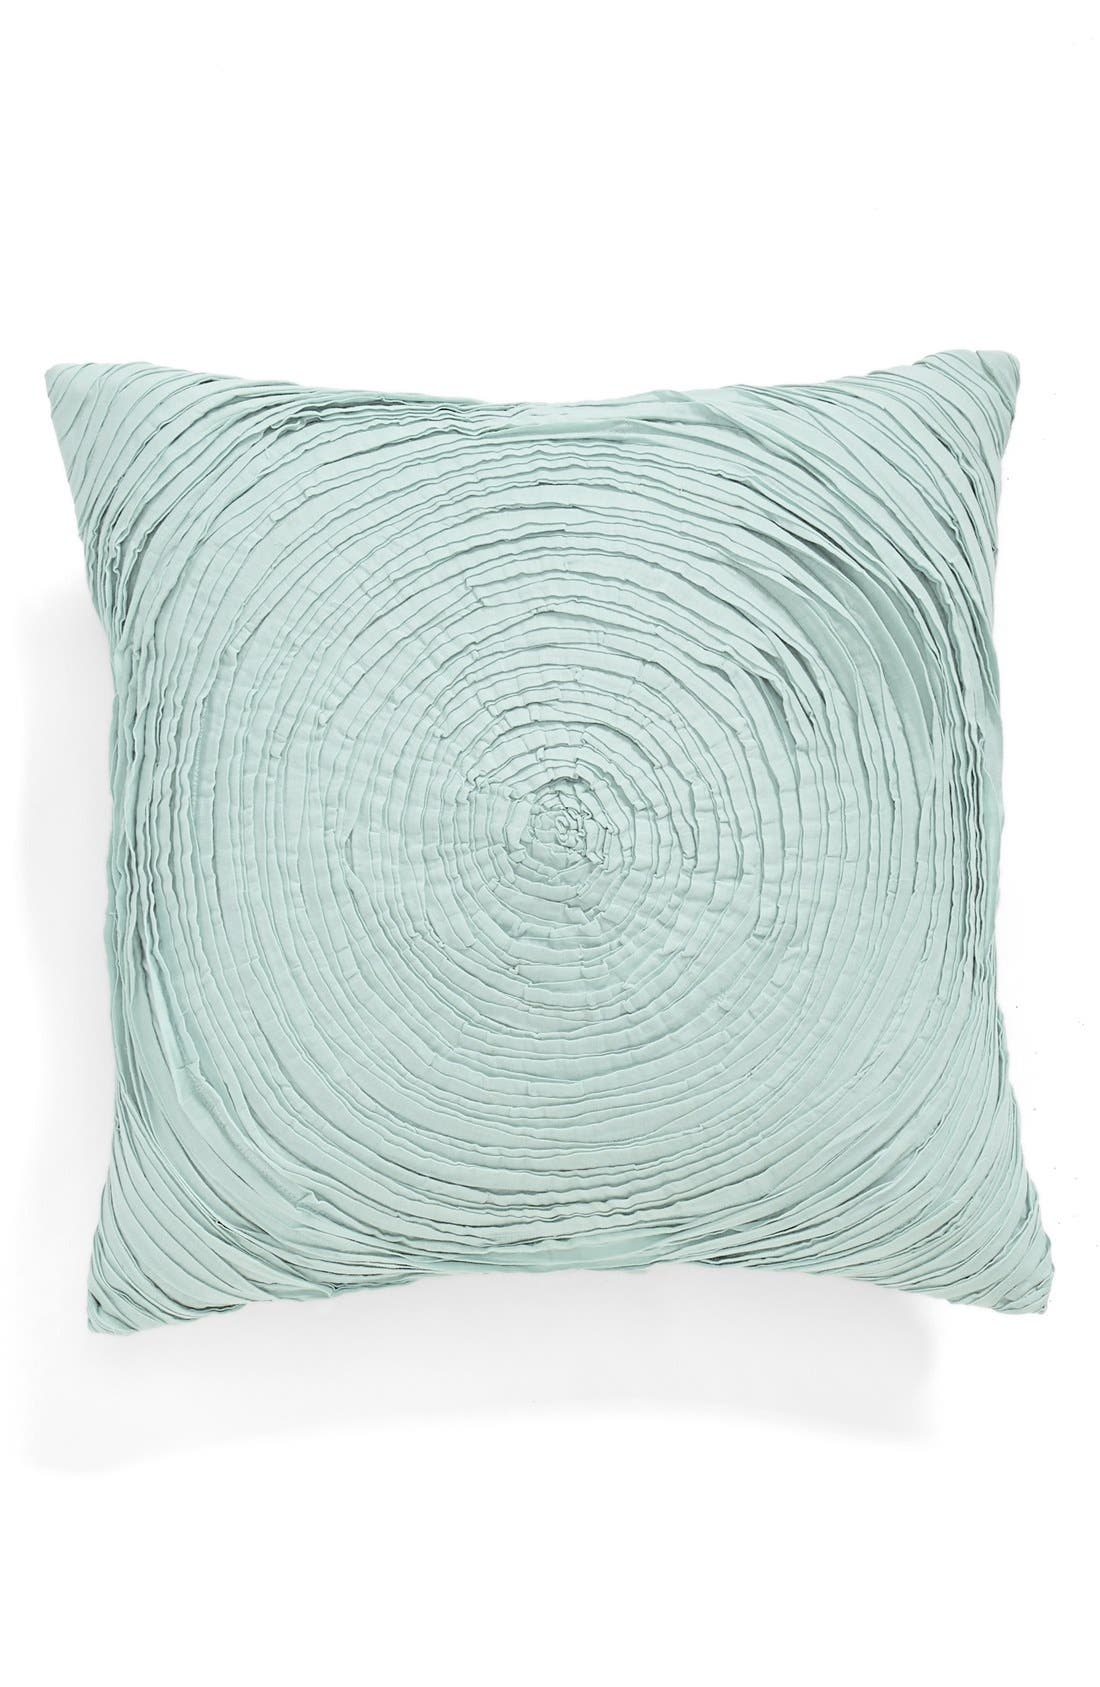 'Full Bloom' Accent Pillow,                         Main,                         color, 440